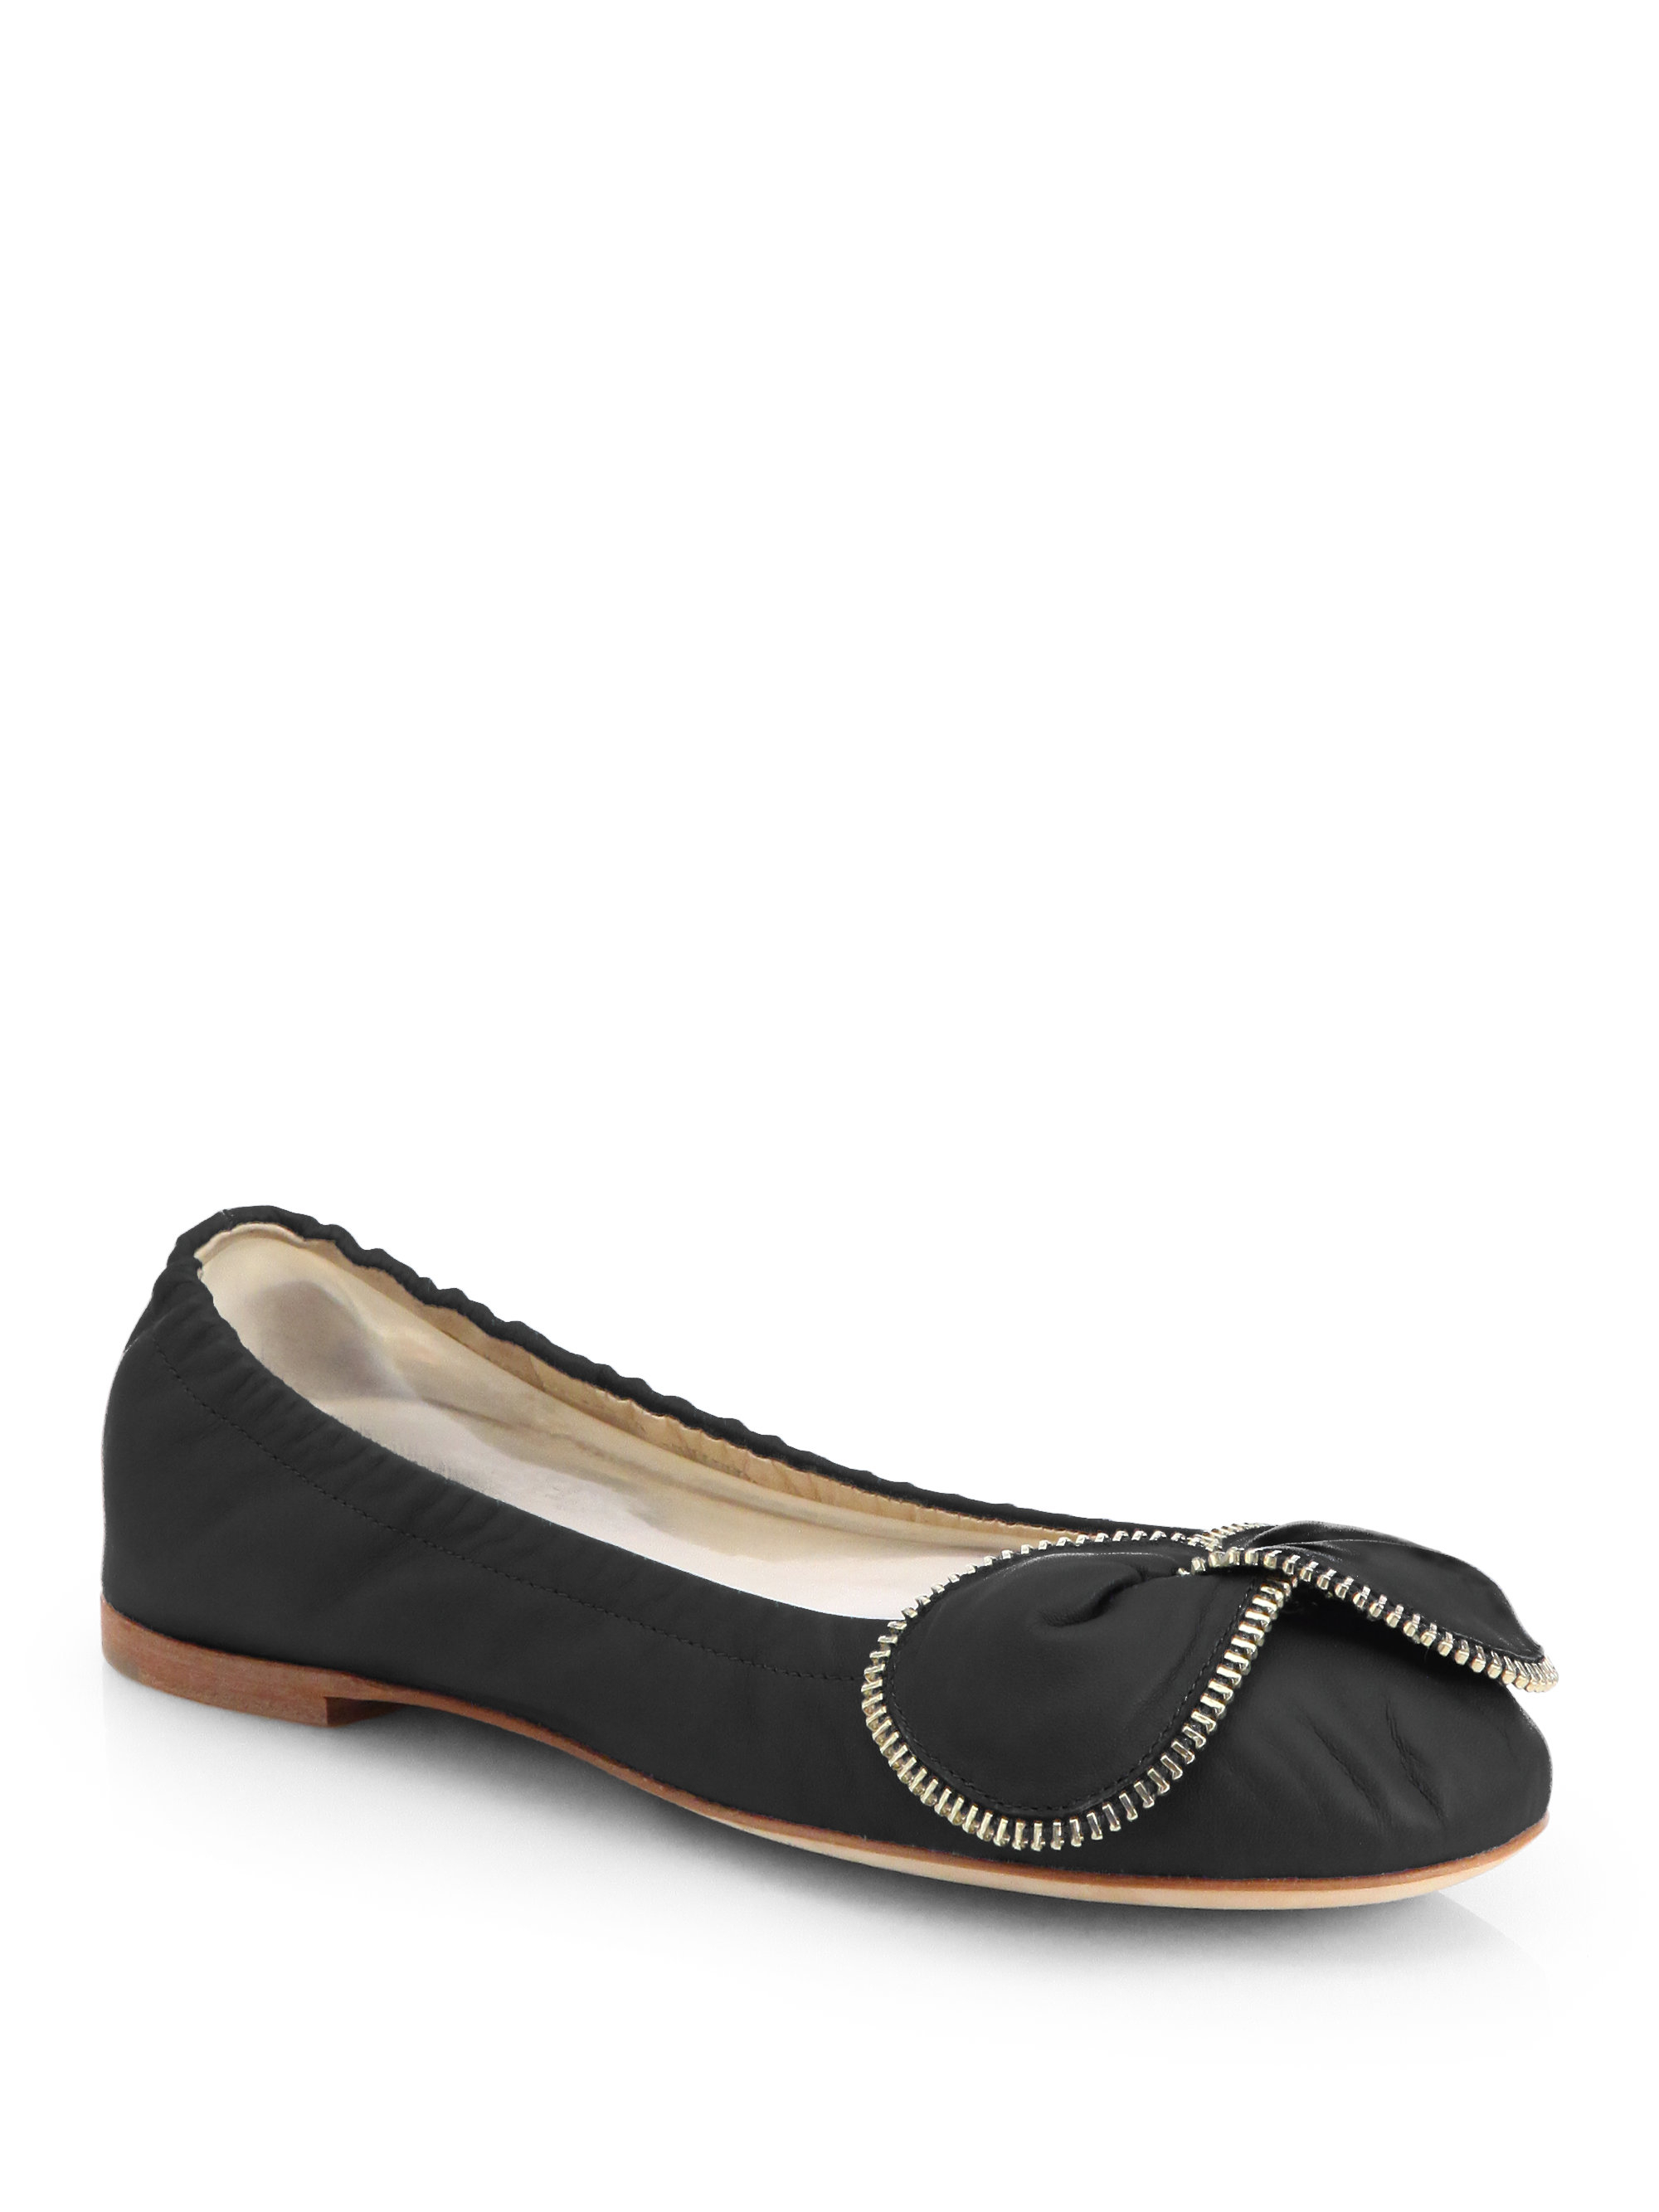 see by chlo aria leather bowtie ballerina flats in black. Black Bedroom Furniture Sets. Home Design Ideas